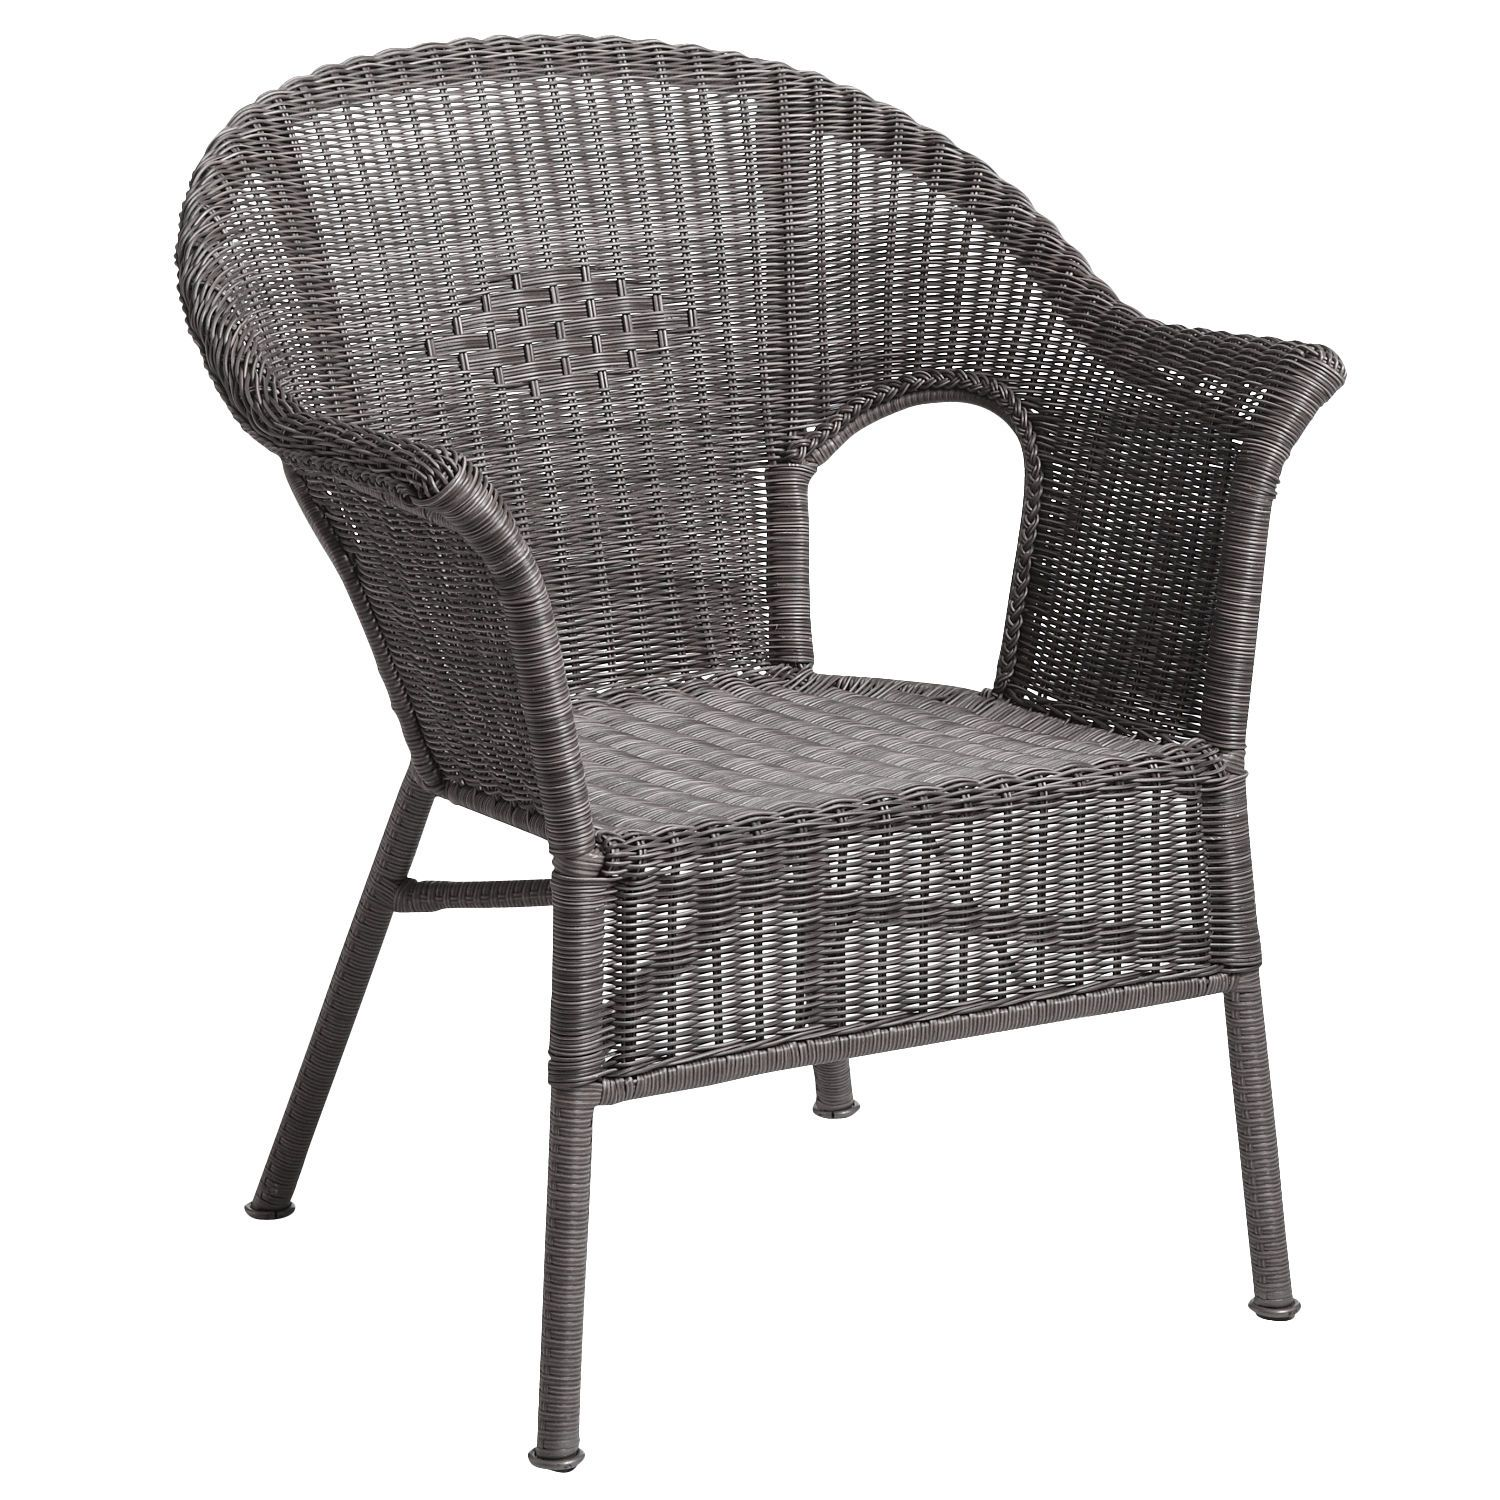 Casbah Chair Gray Pier 1 Imports Outdoors